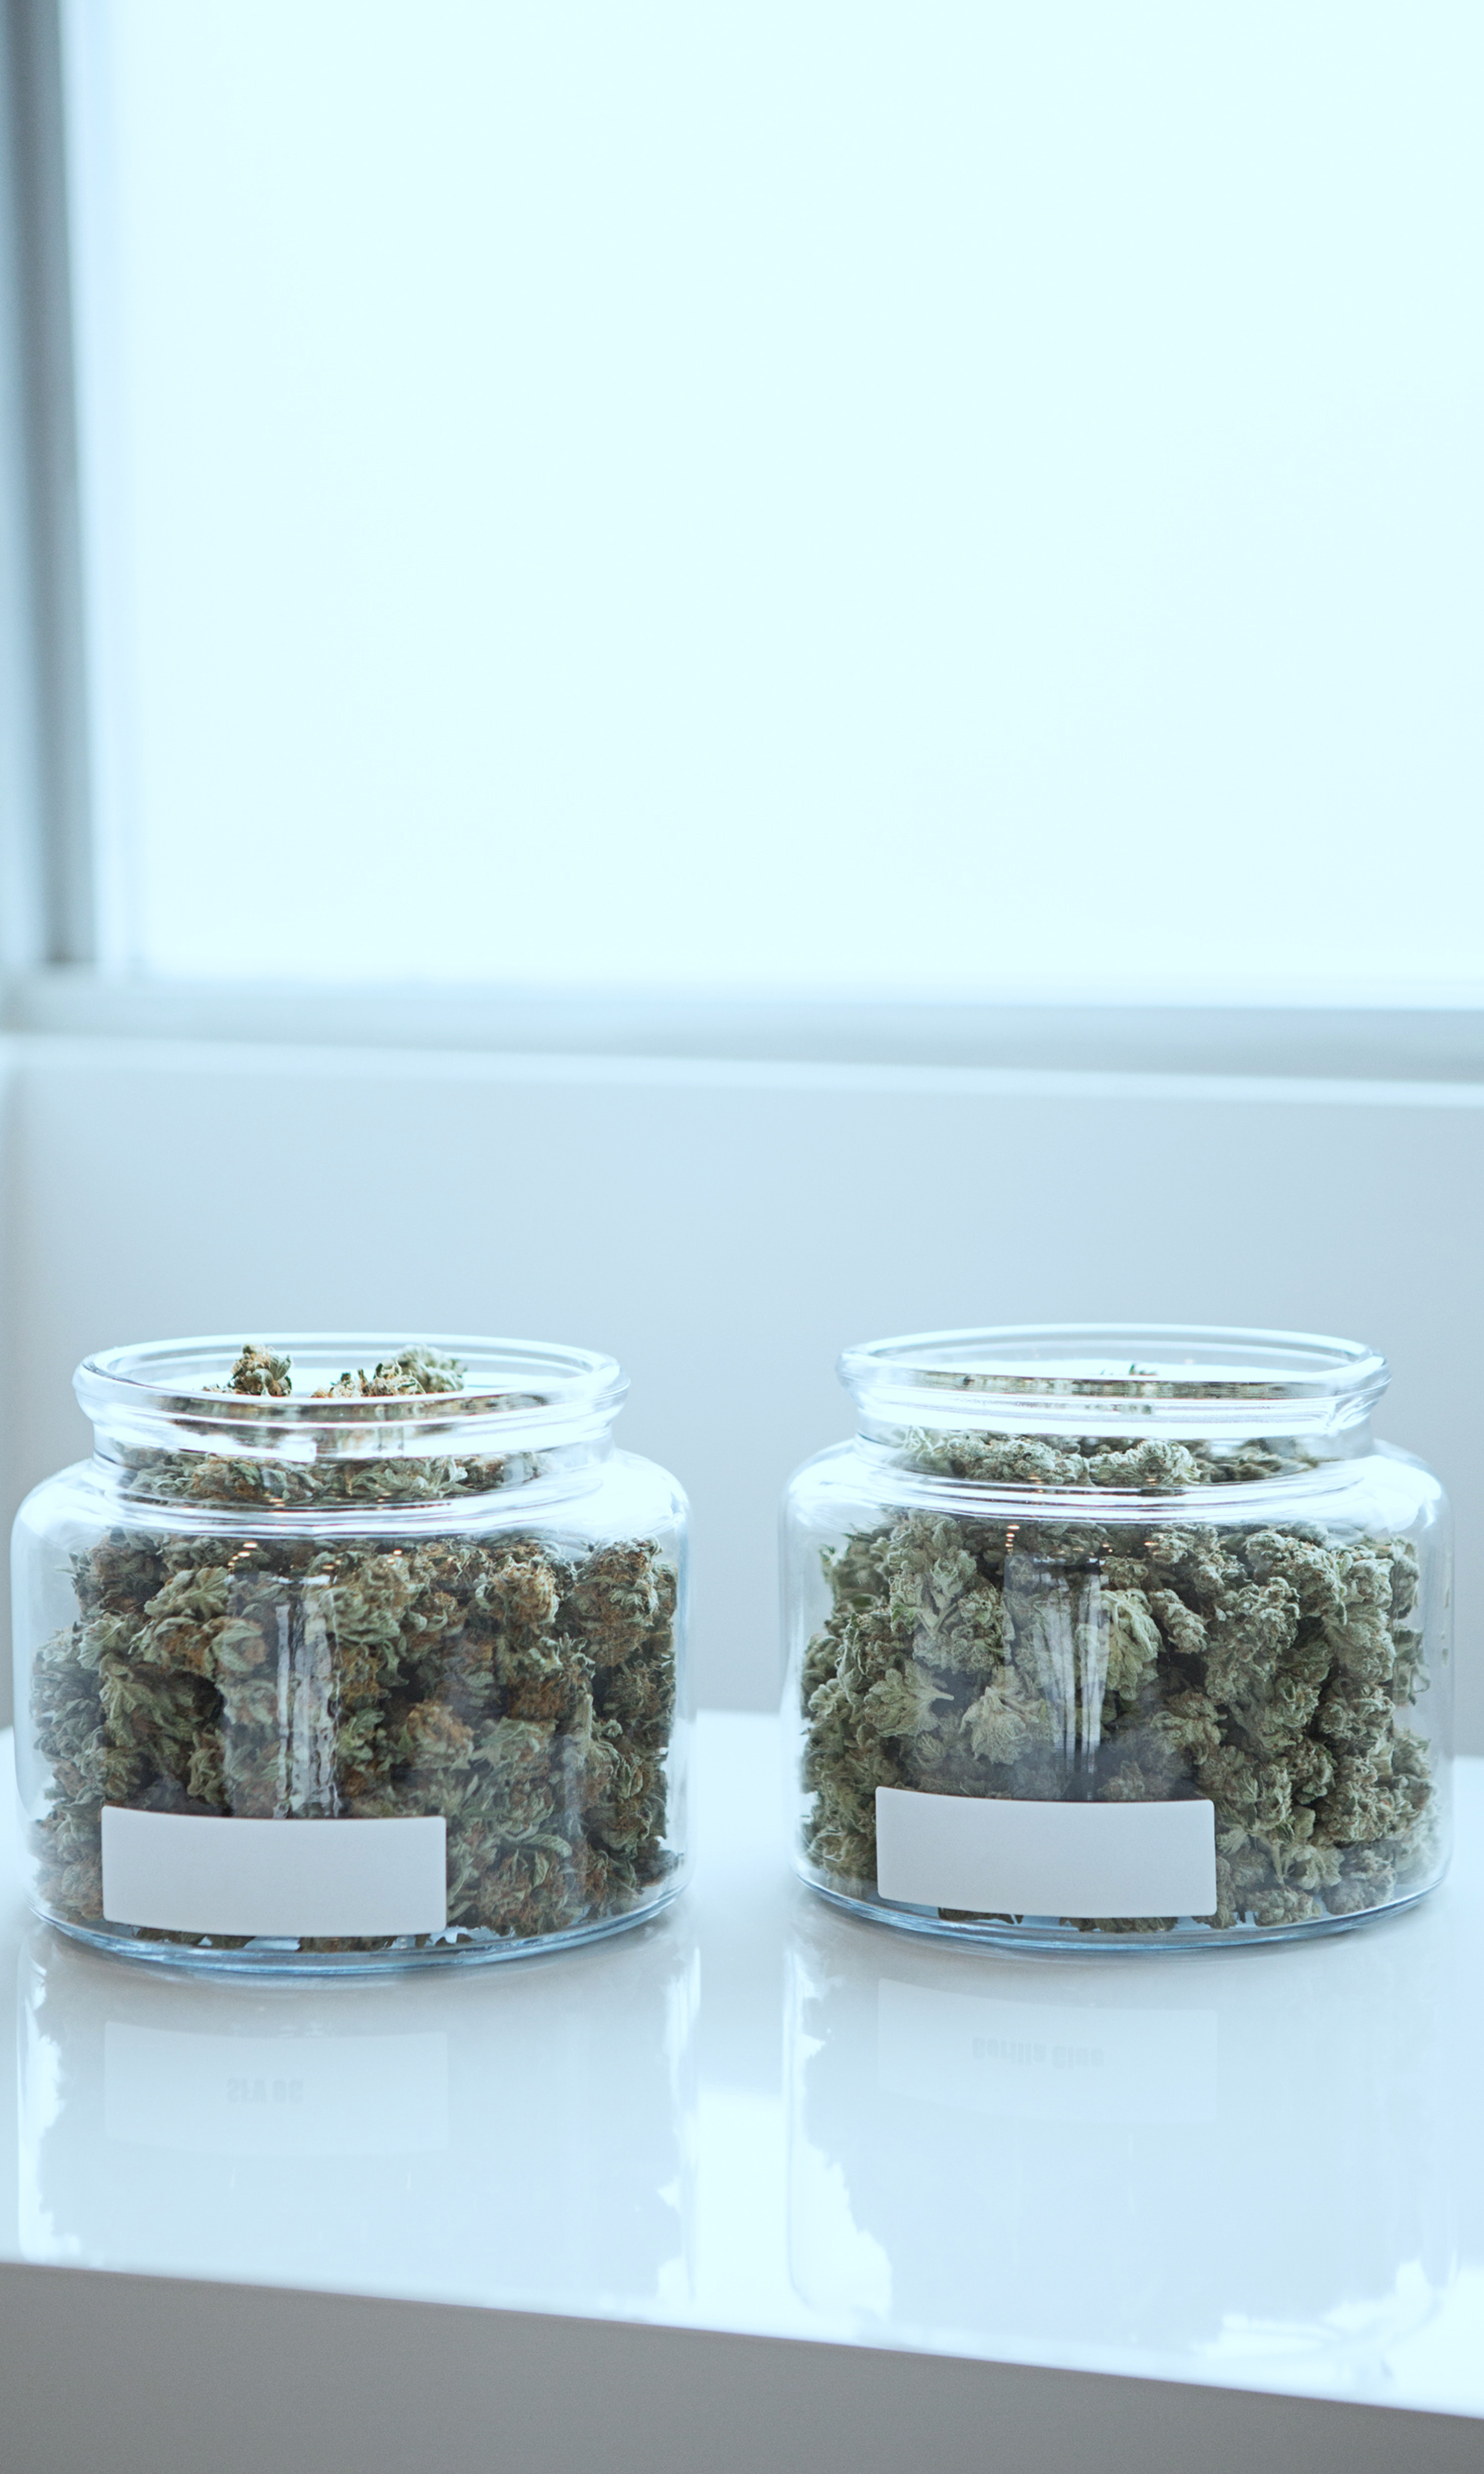 Ideas and Challenges Related to the Cannabis Industry and Real Property - Financing, Leasing, Selling, Buying, and Permit Compliance